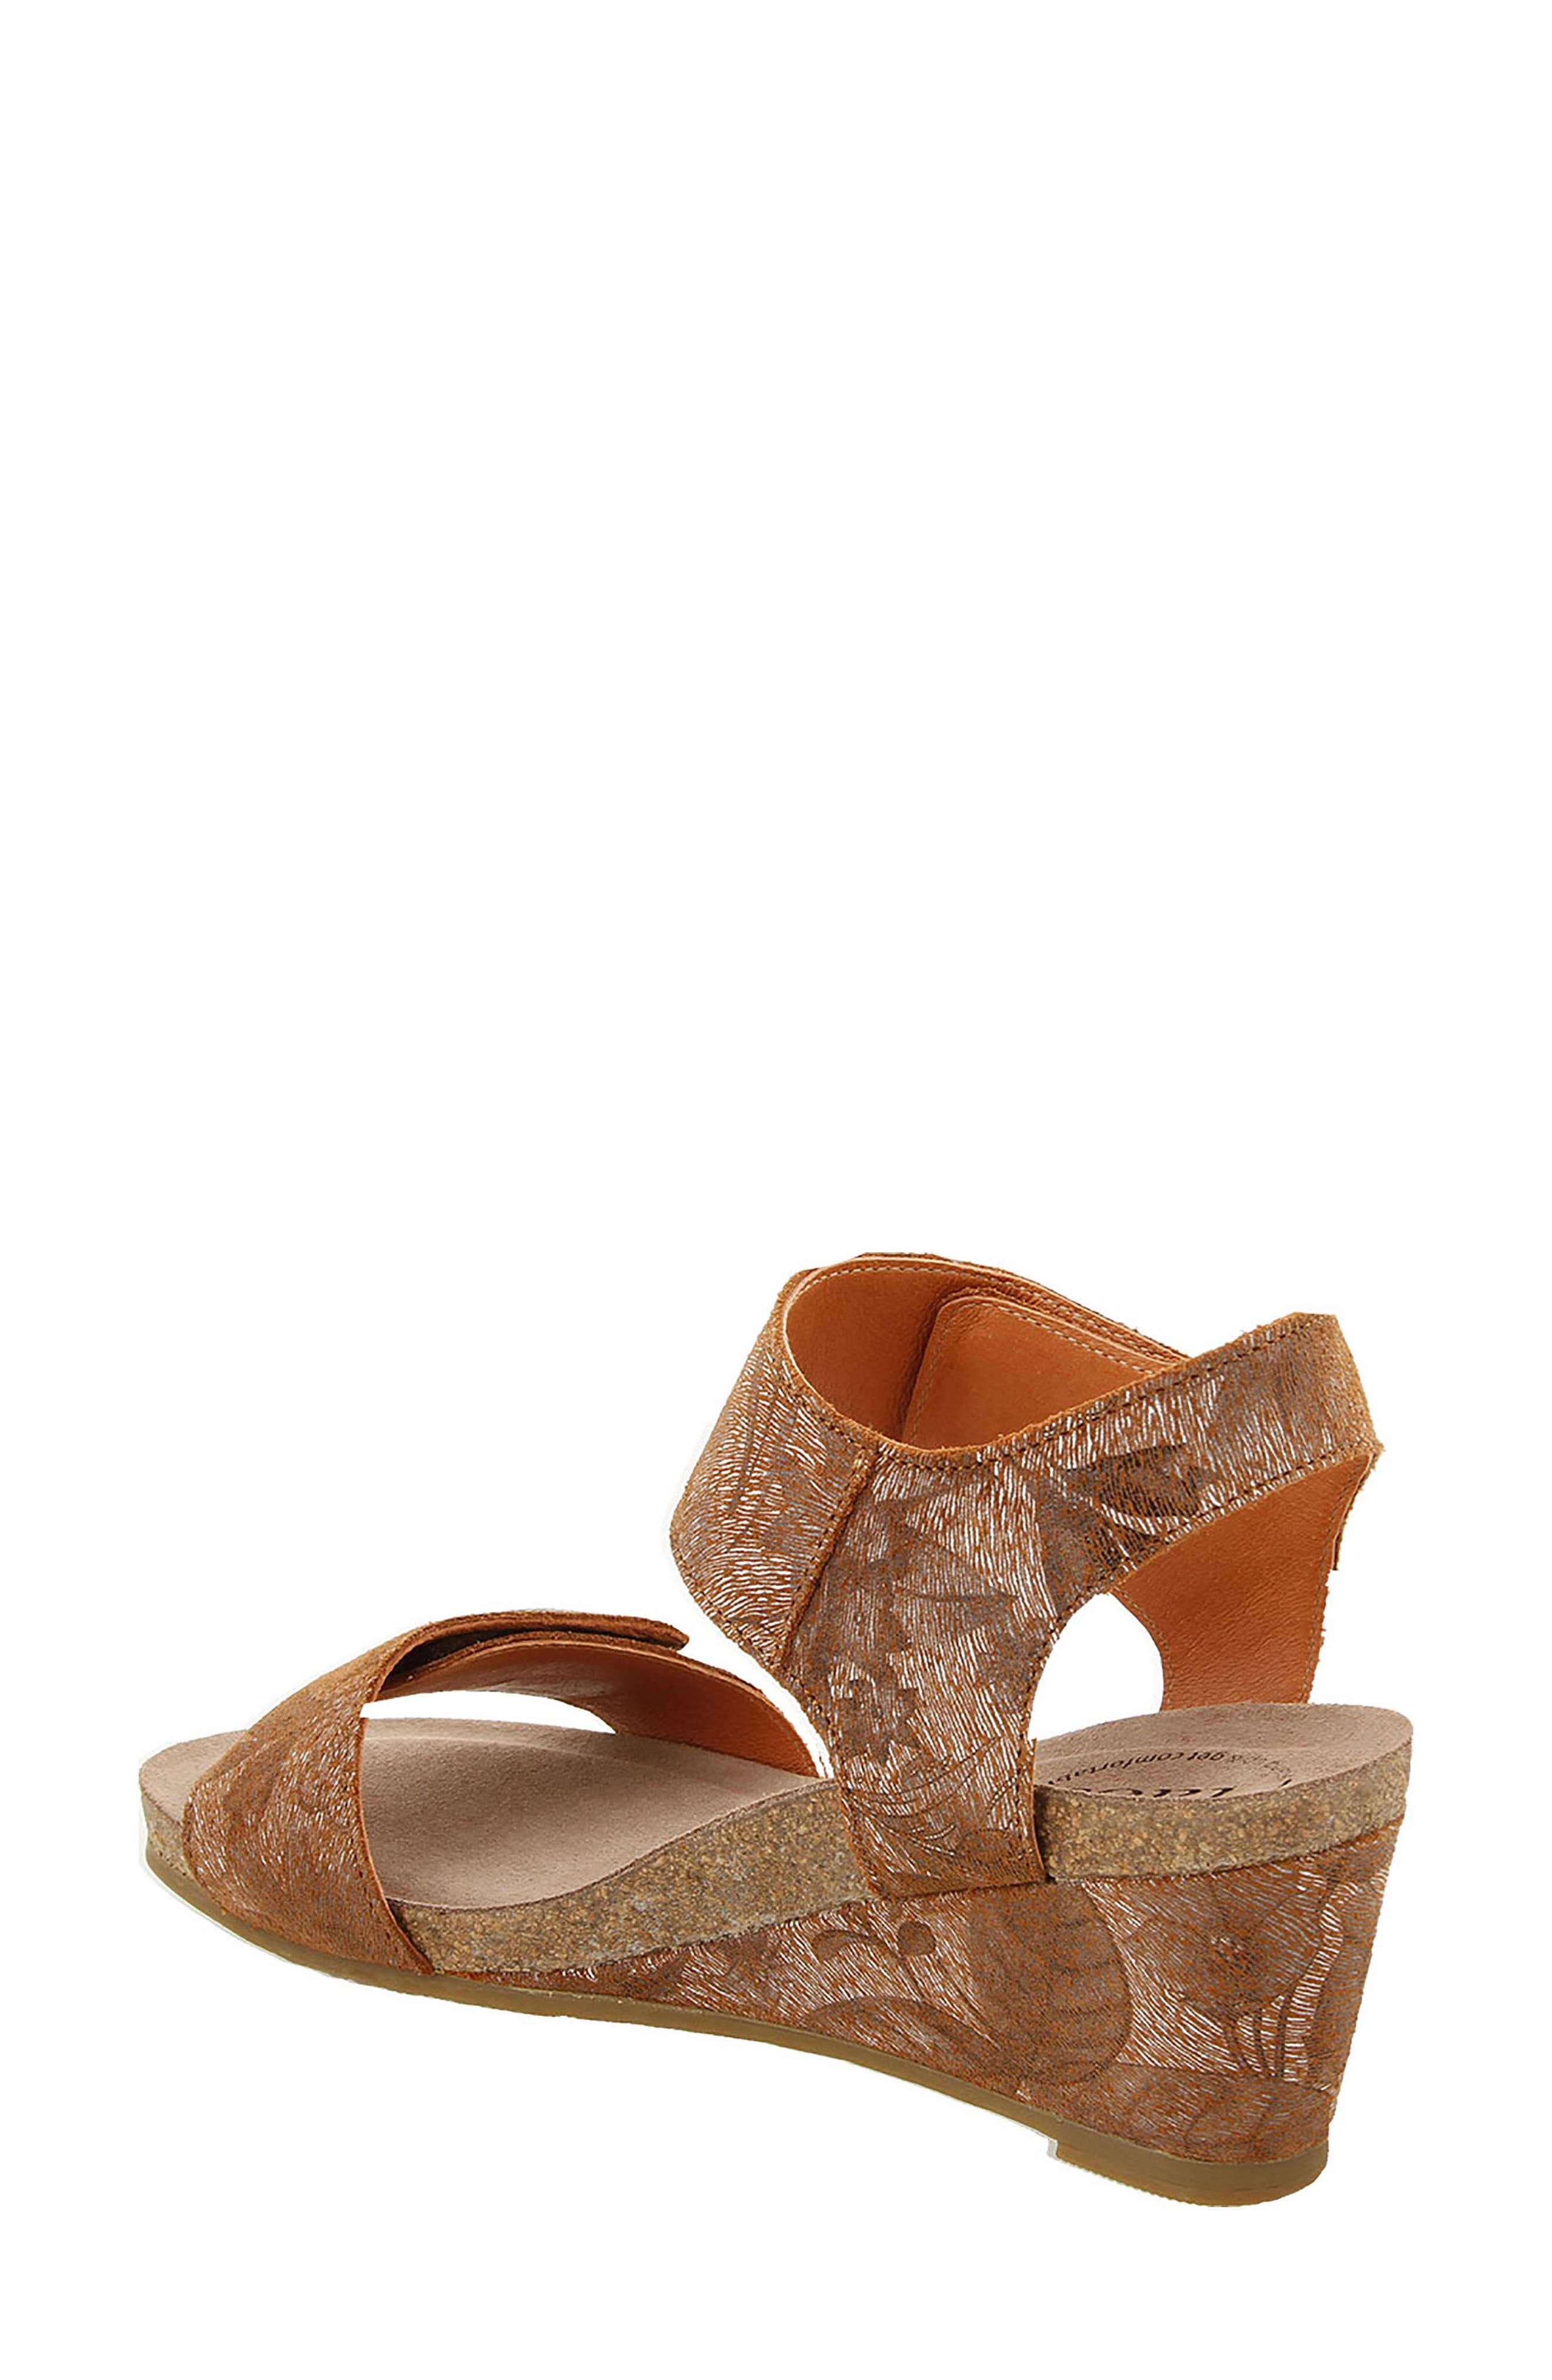 Alternate Image 2  - Taos 'Carousel 2' Wedge Sandal (Women)